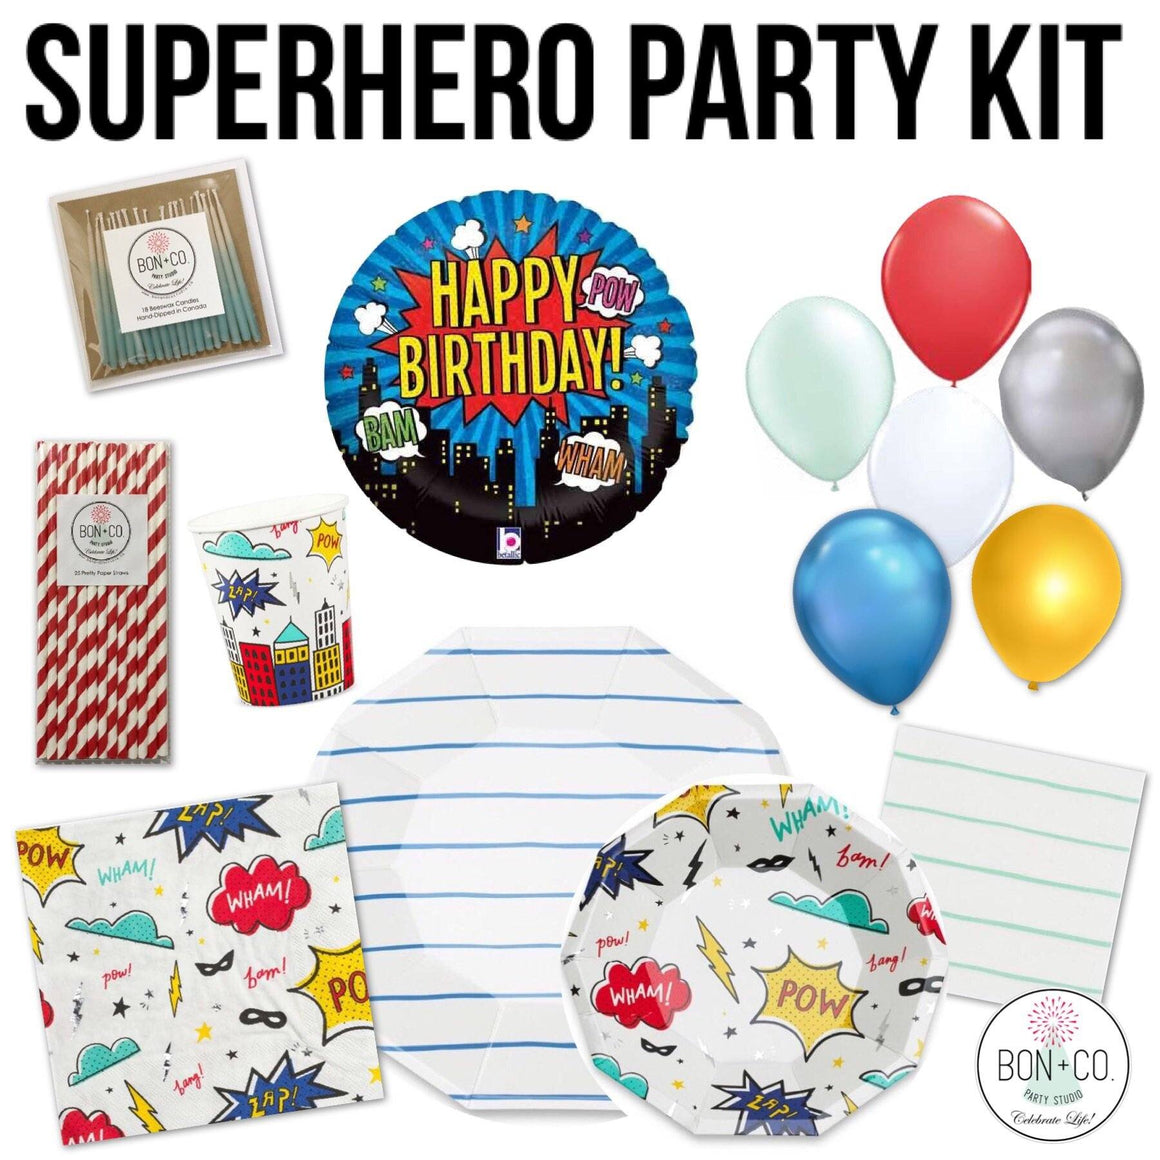 PARTY KIT - SUPERHERO, Party Kit, Bon + Co. Party Studio - Bon + Co. Party Studio